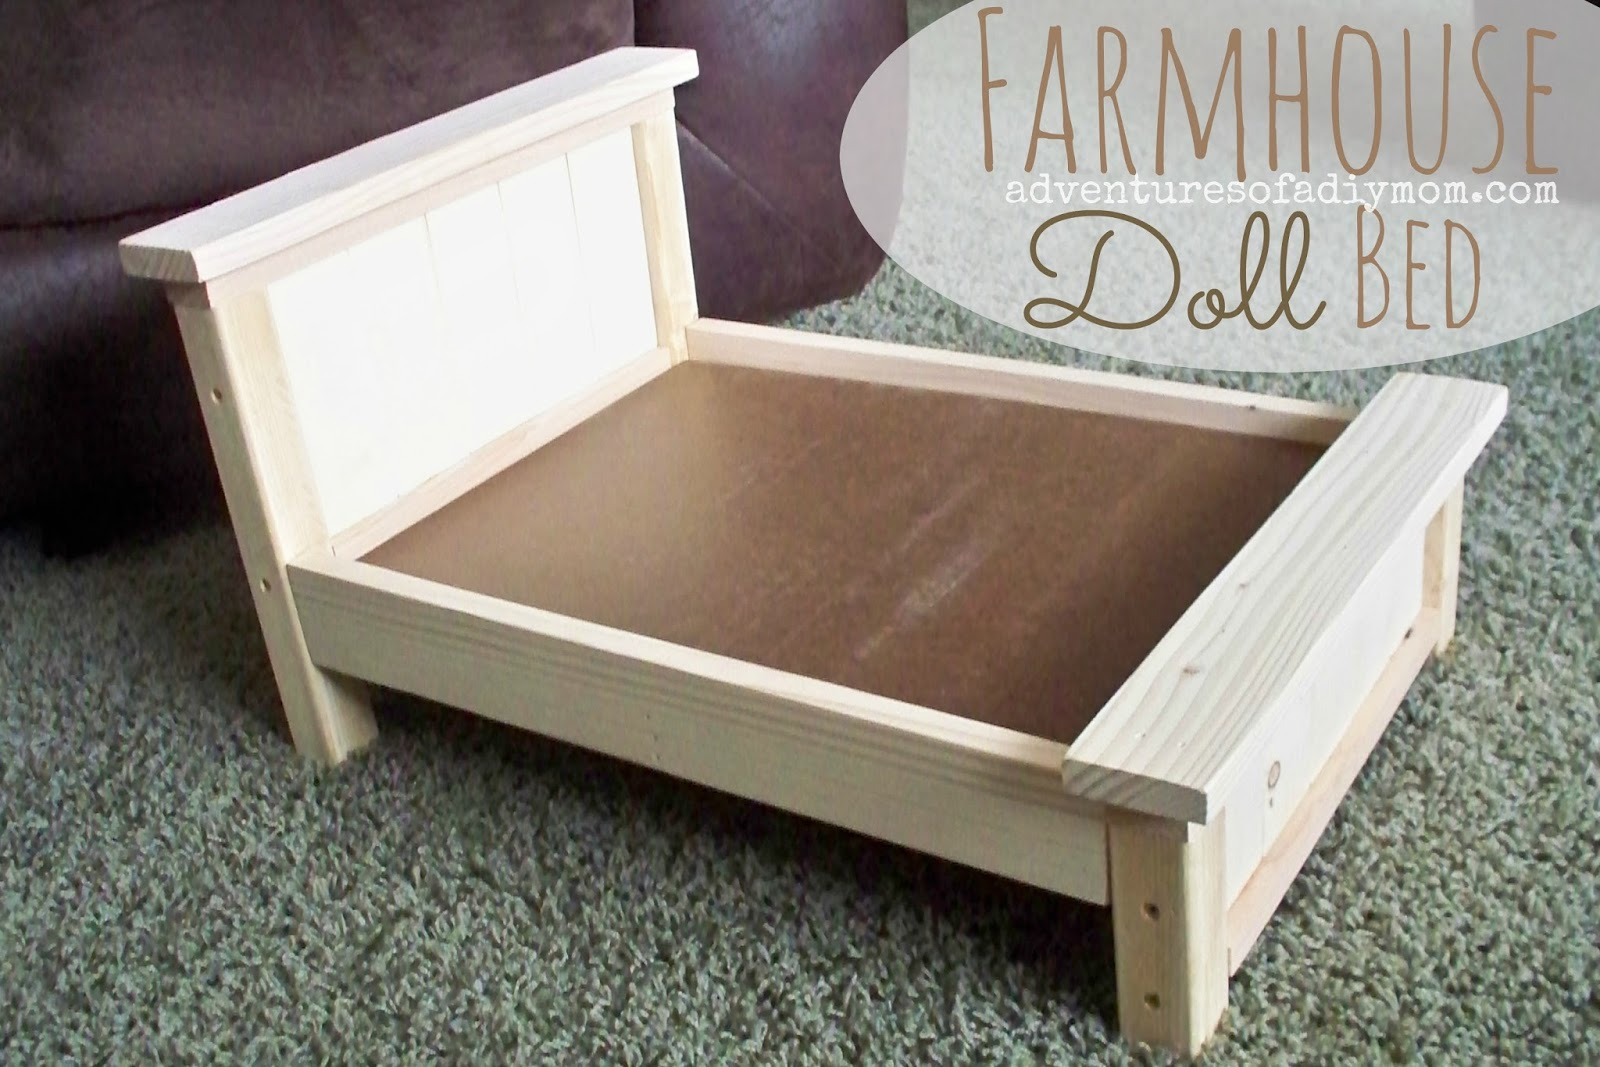 DIY Farmhouse Doll Bed for American Girl Dolls Adventures of a DIY Mom